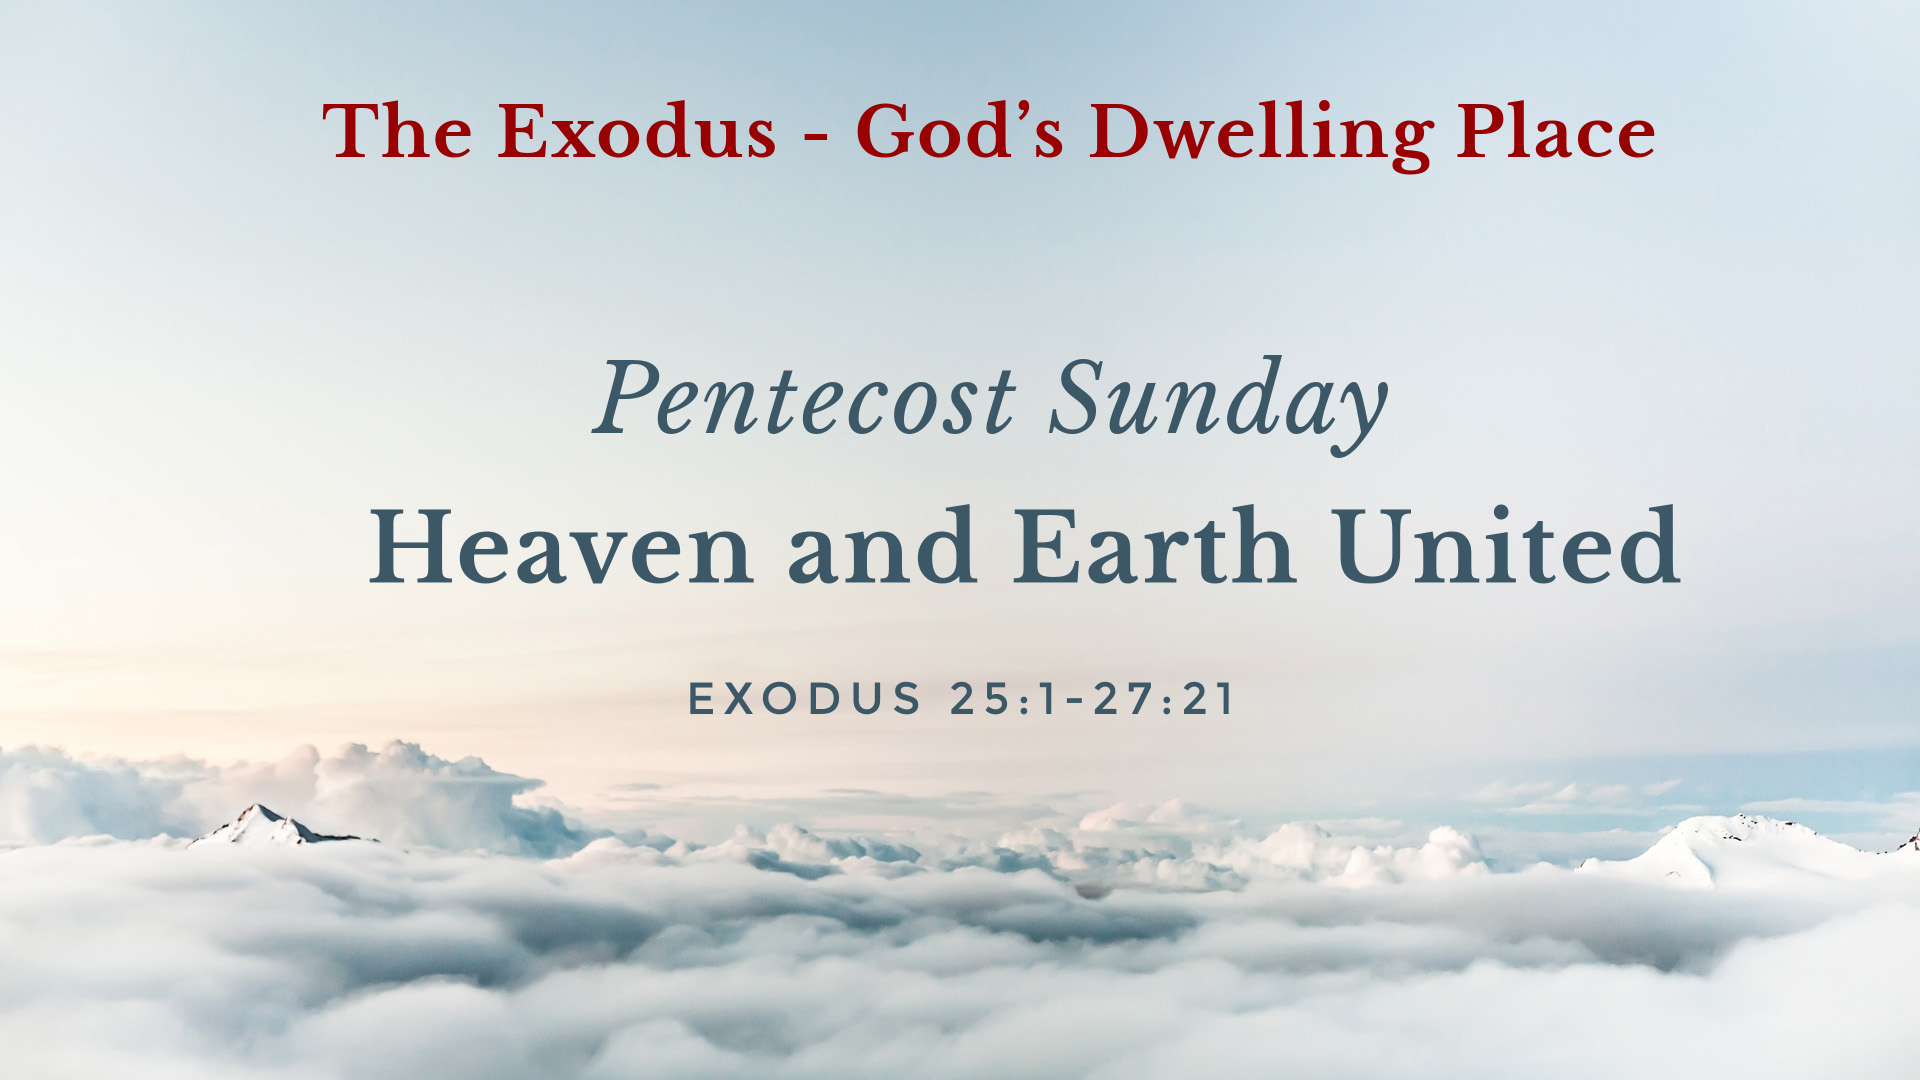 Image for the sermon Heaven and Earth United